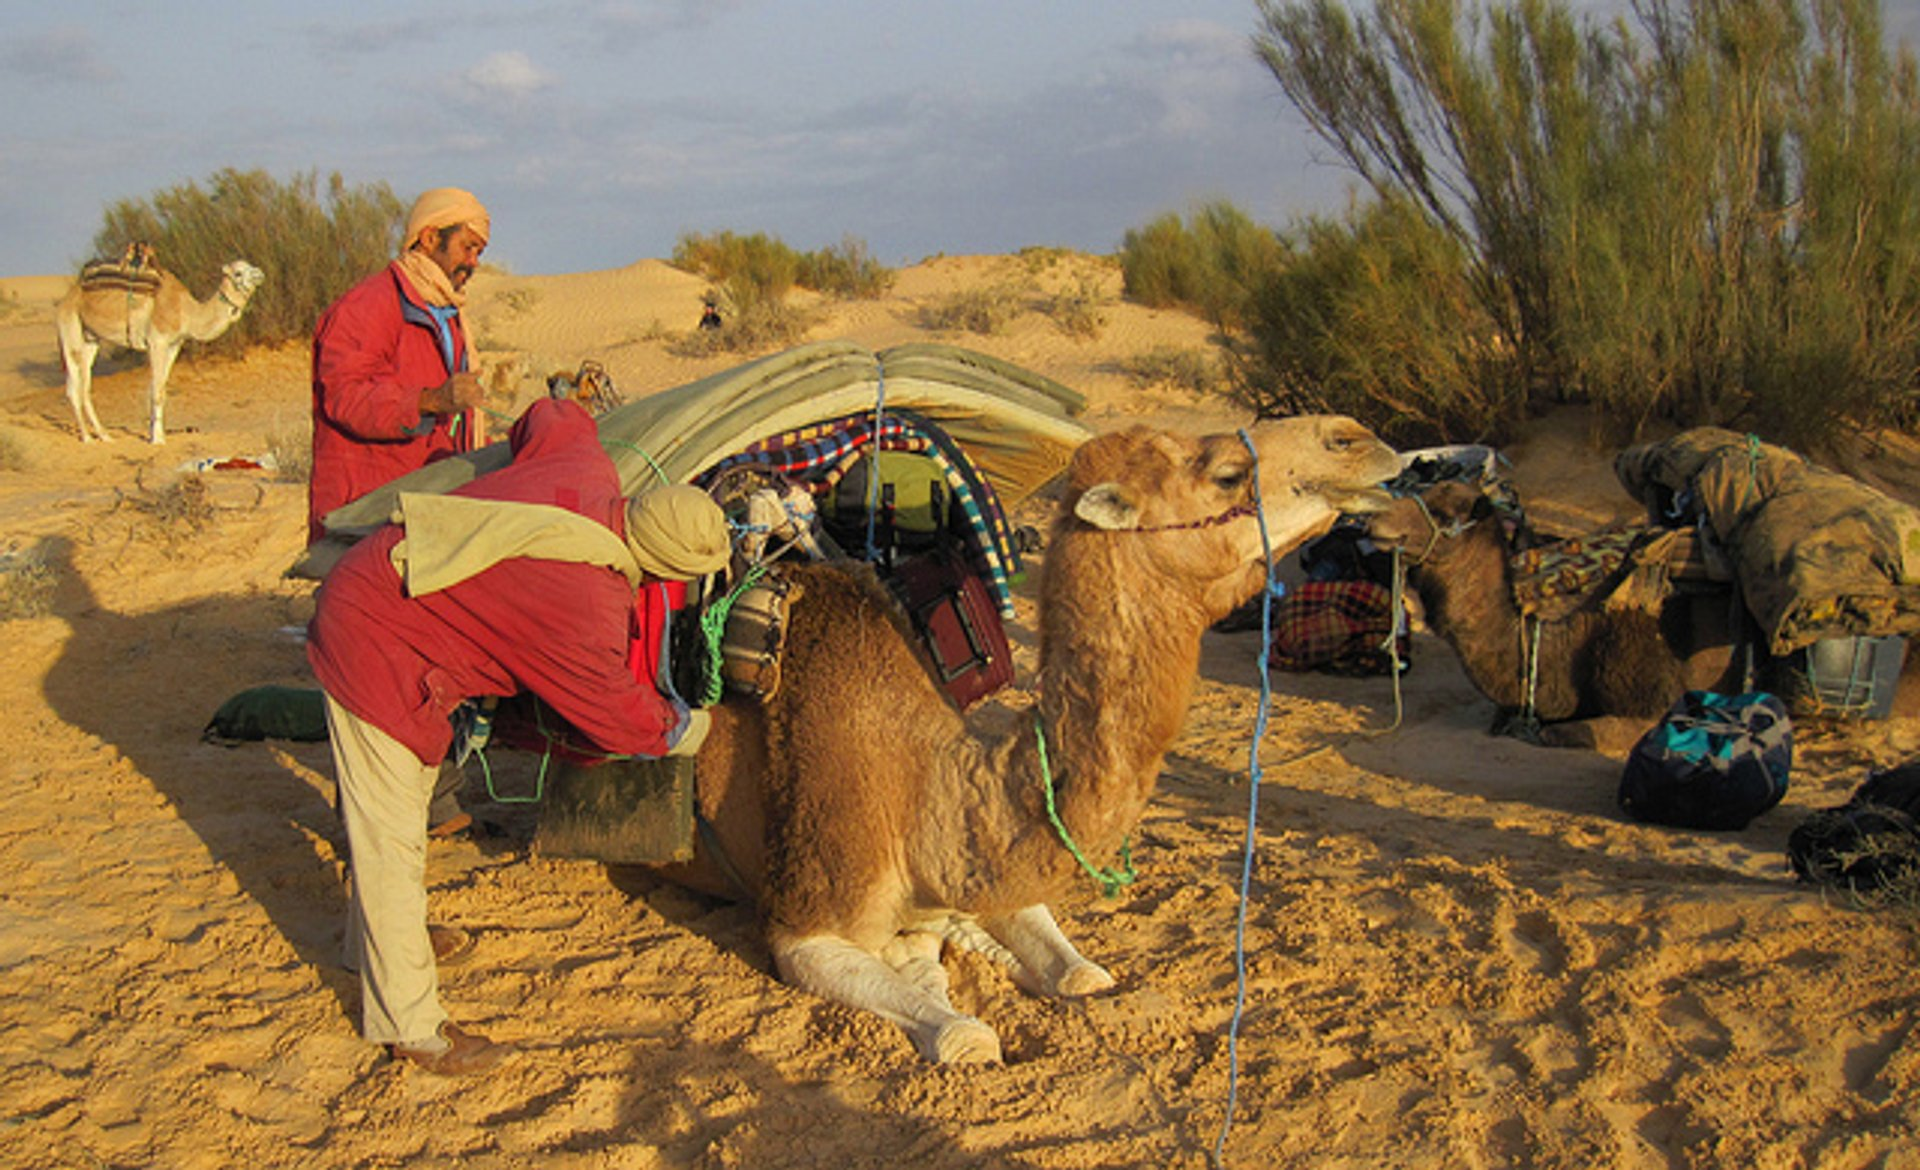 Camping in Tunisian Sahara in Tunisia 2020 - Best Time